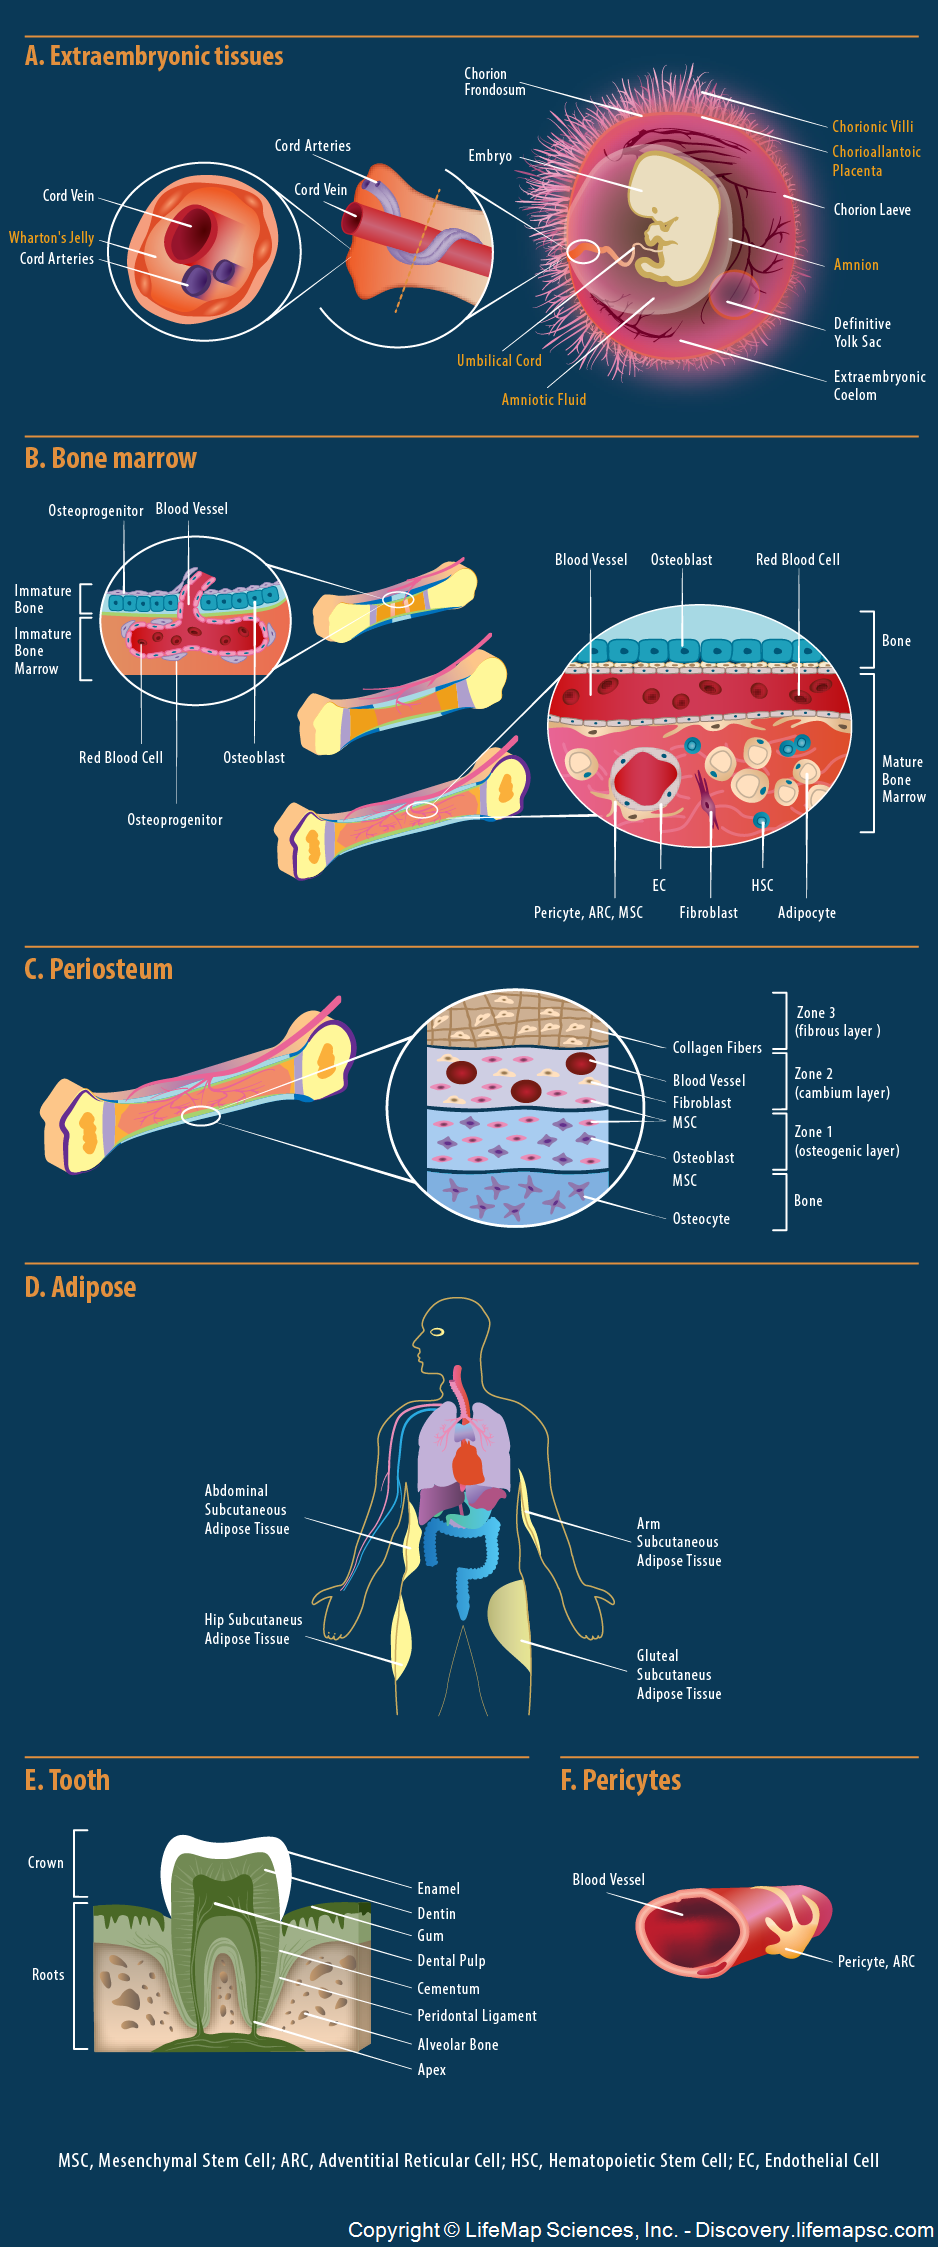 In-vivo Mesenchymal Stem Cells Origin